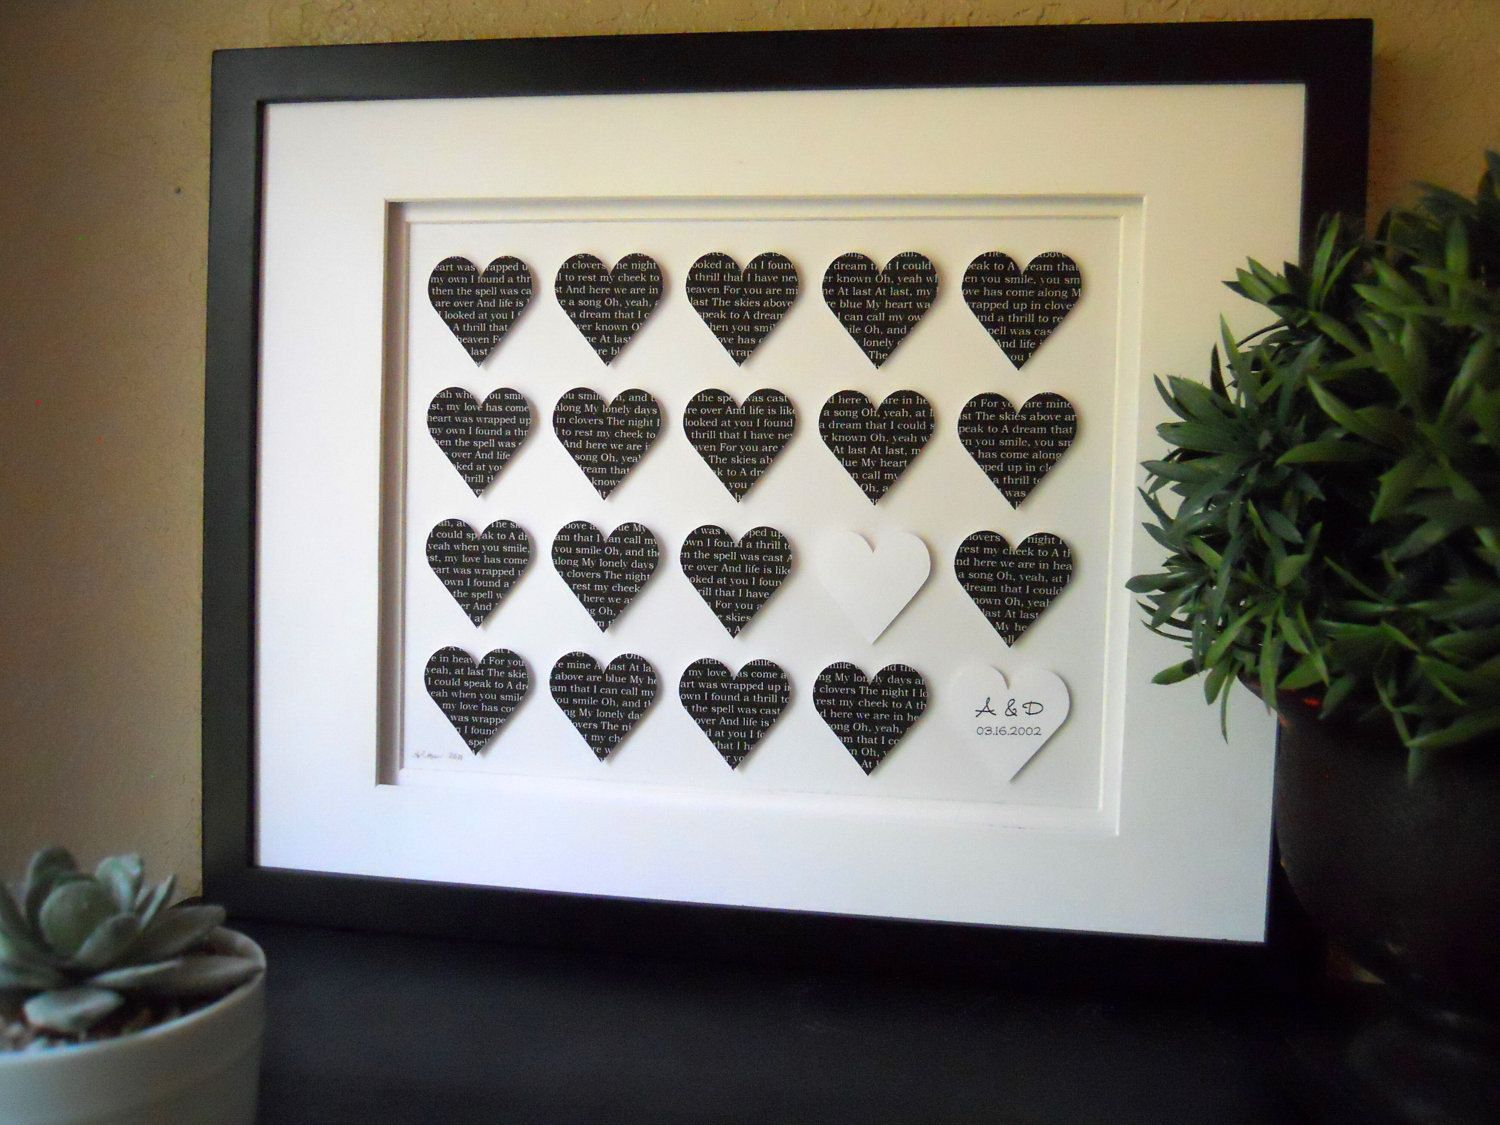 Wedding first dance lyric 3d paper heart framed gift ways to say i gift crafts solutioingenieria Image collections